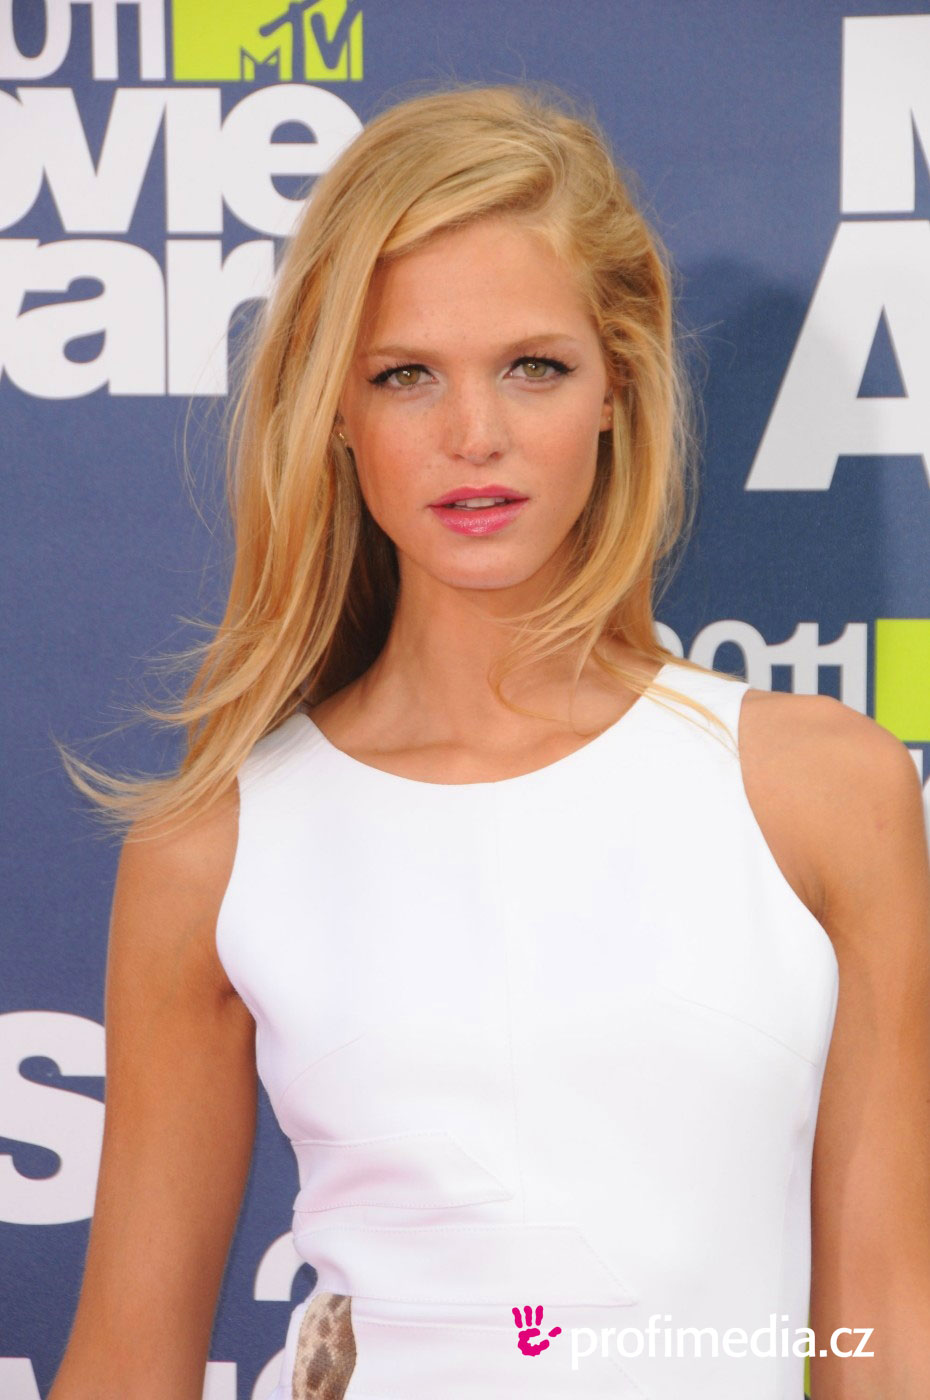 erin heatherton instaerin heatherton instagram, erin heatherton gif, erin heatherton 2016, erin heatherton boyfriend, erin heatherton siblings, erin heatherton interview, erin heatherton wiki, erin heatherton parents, erin heatherton net worth, erin heatherton photo, erin heatherton movie, erin heatherton model, erin heatherton bellazon, erin heatherton victoria's secret, erin heatherton insta, erin heatherton and leonardo dicaprio, erin heatherton listal, erin heatherton zimbio, erin heatherton birthday, erin heatherton 2013